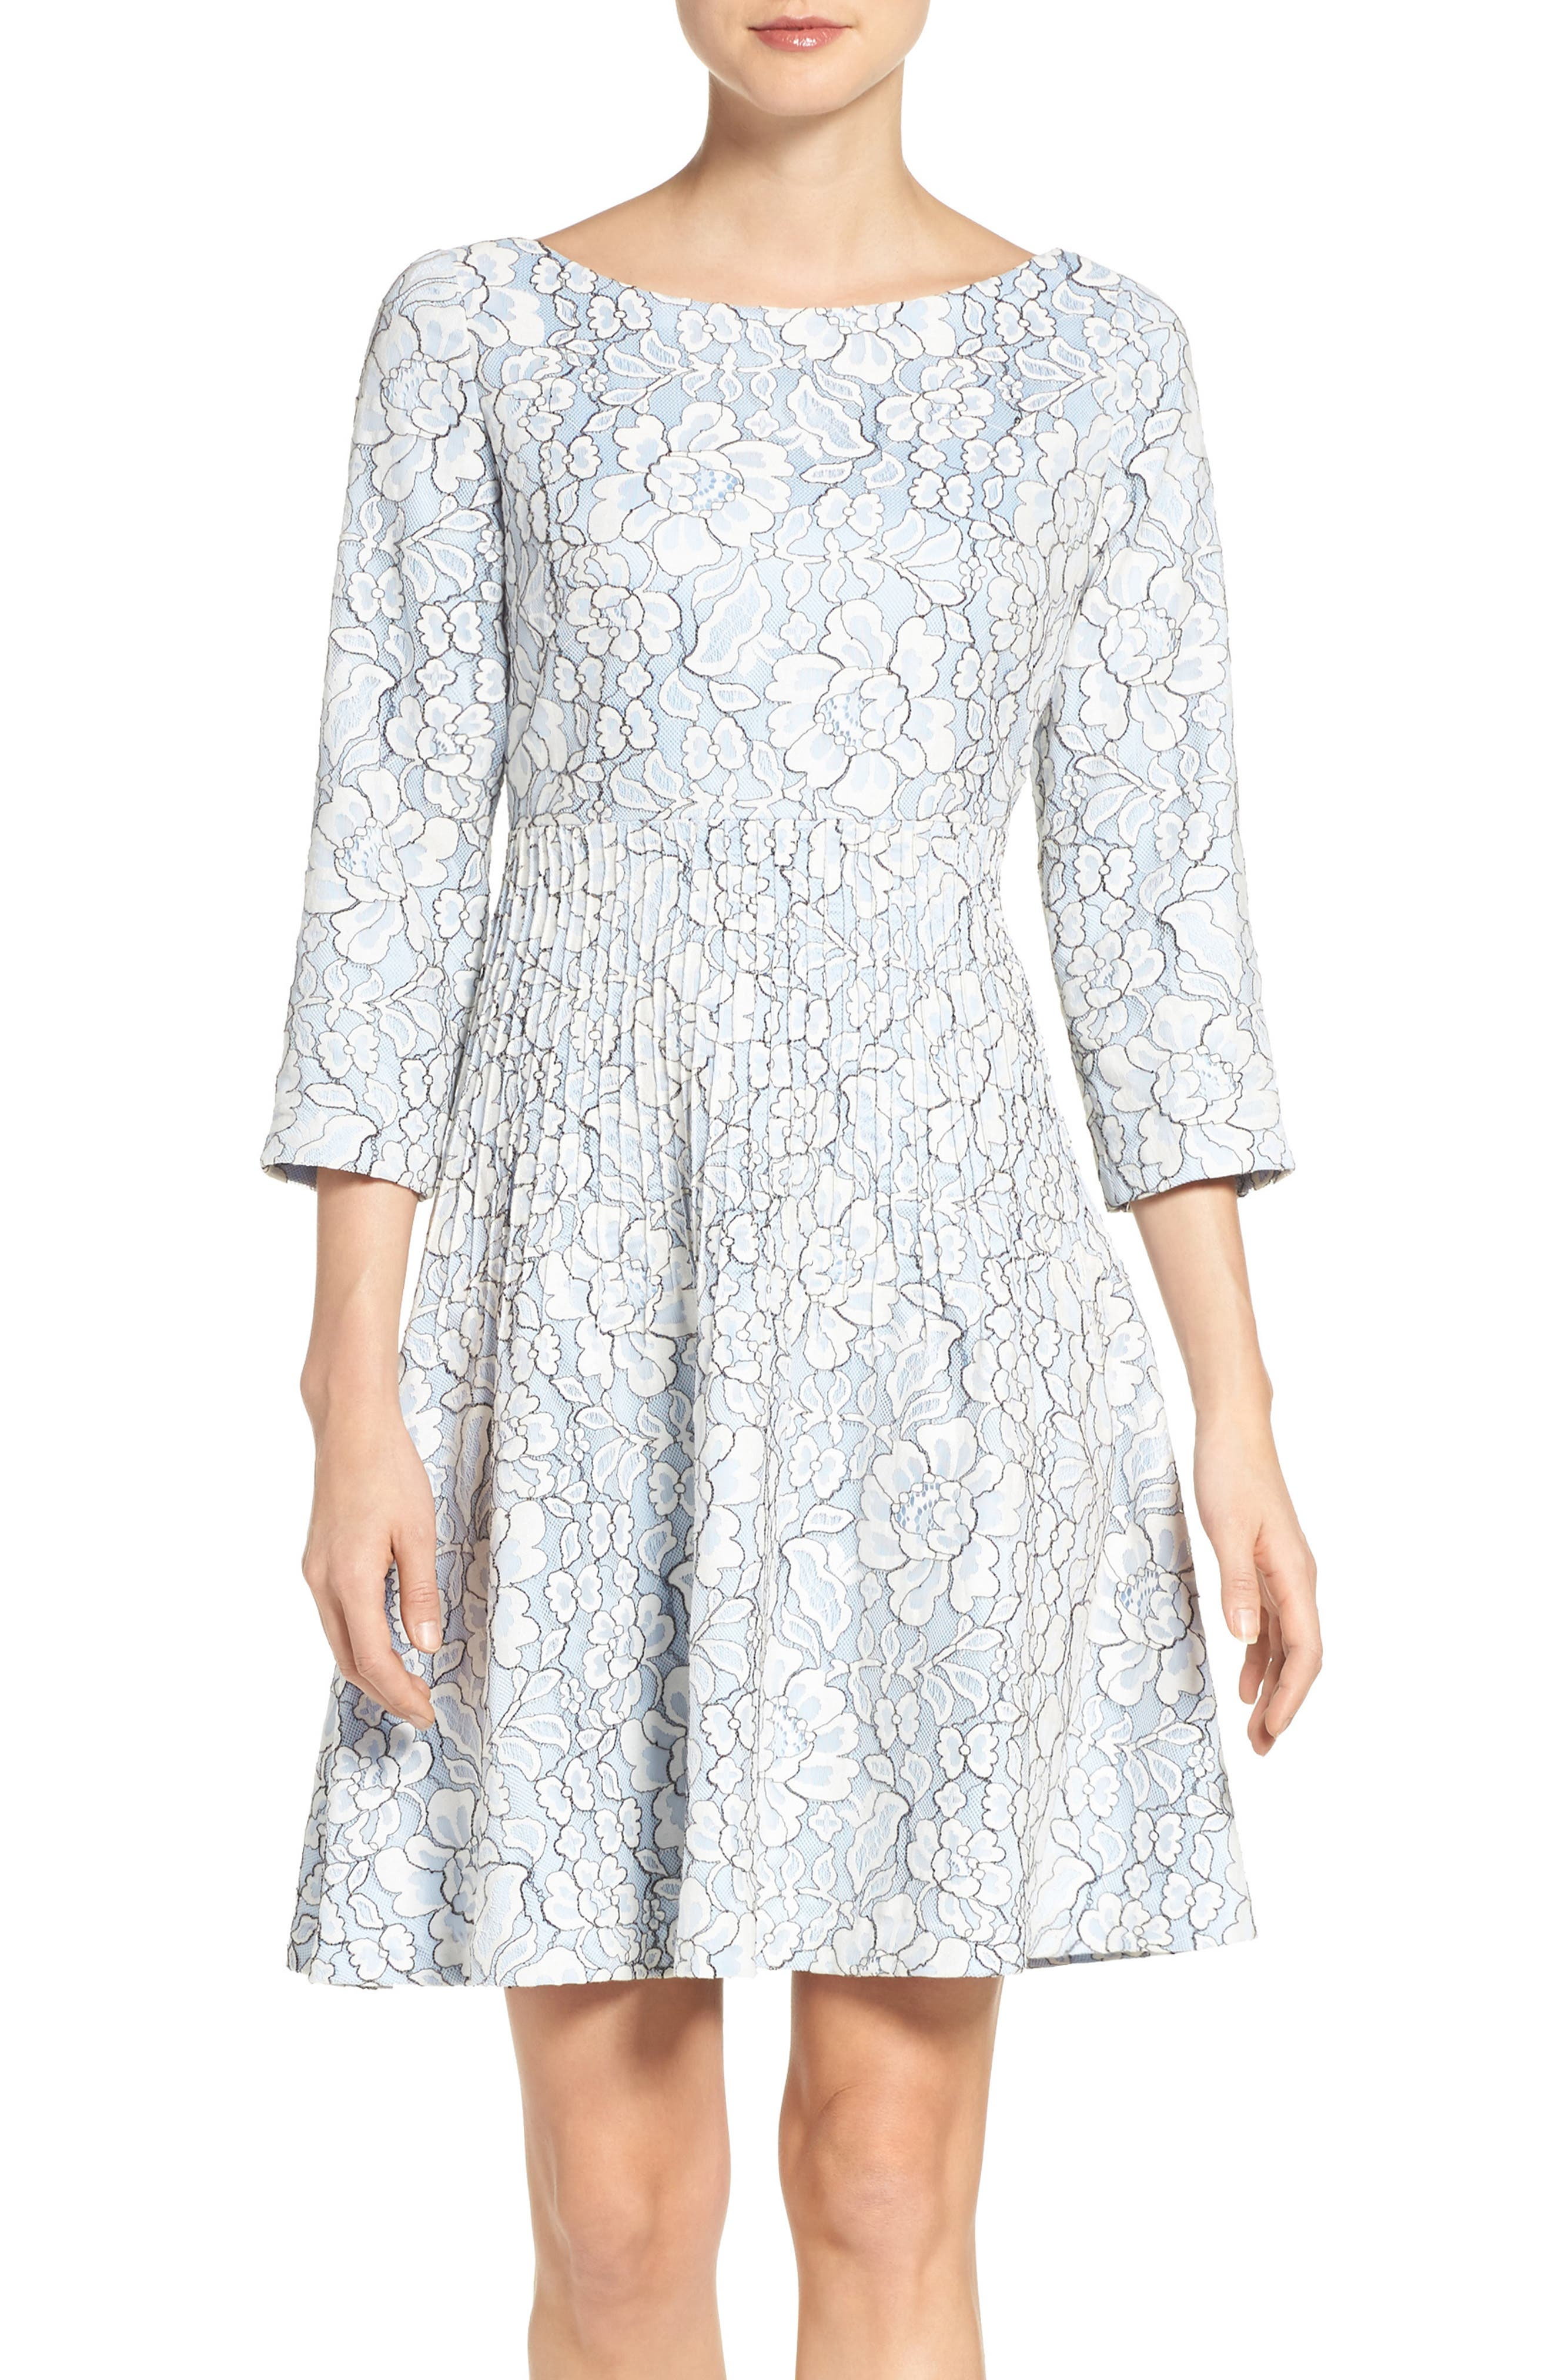 Embroidered Floral Fit & Flare Dress,                         Main,                         color, Ivory/ Blue